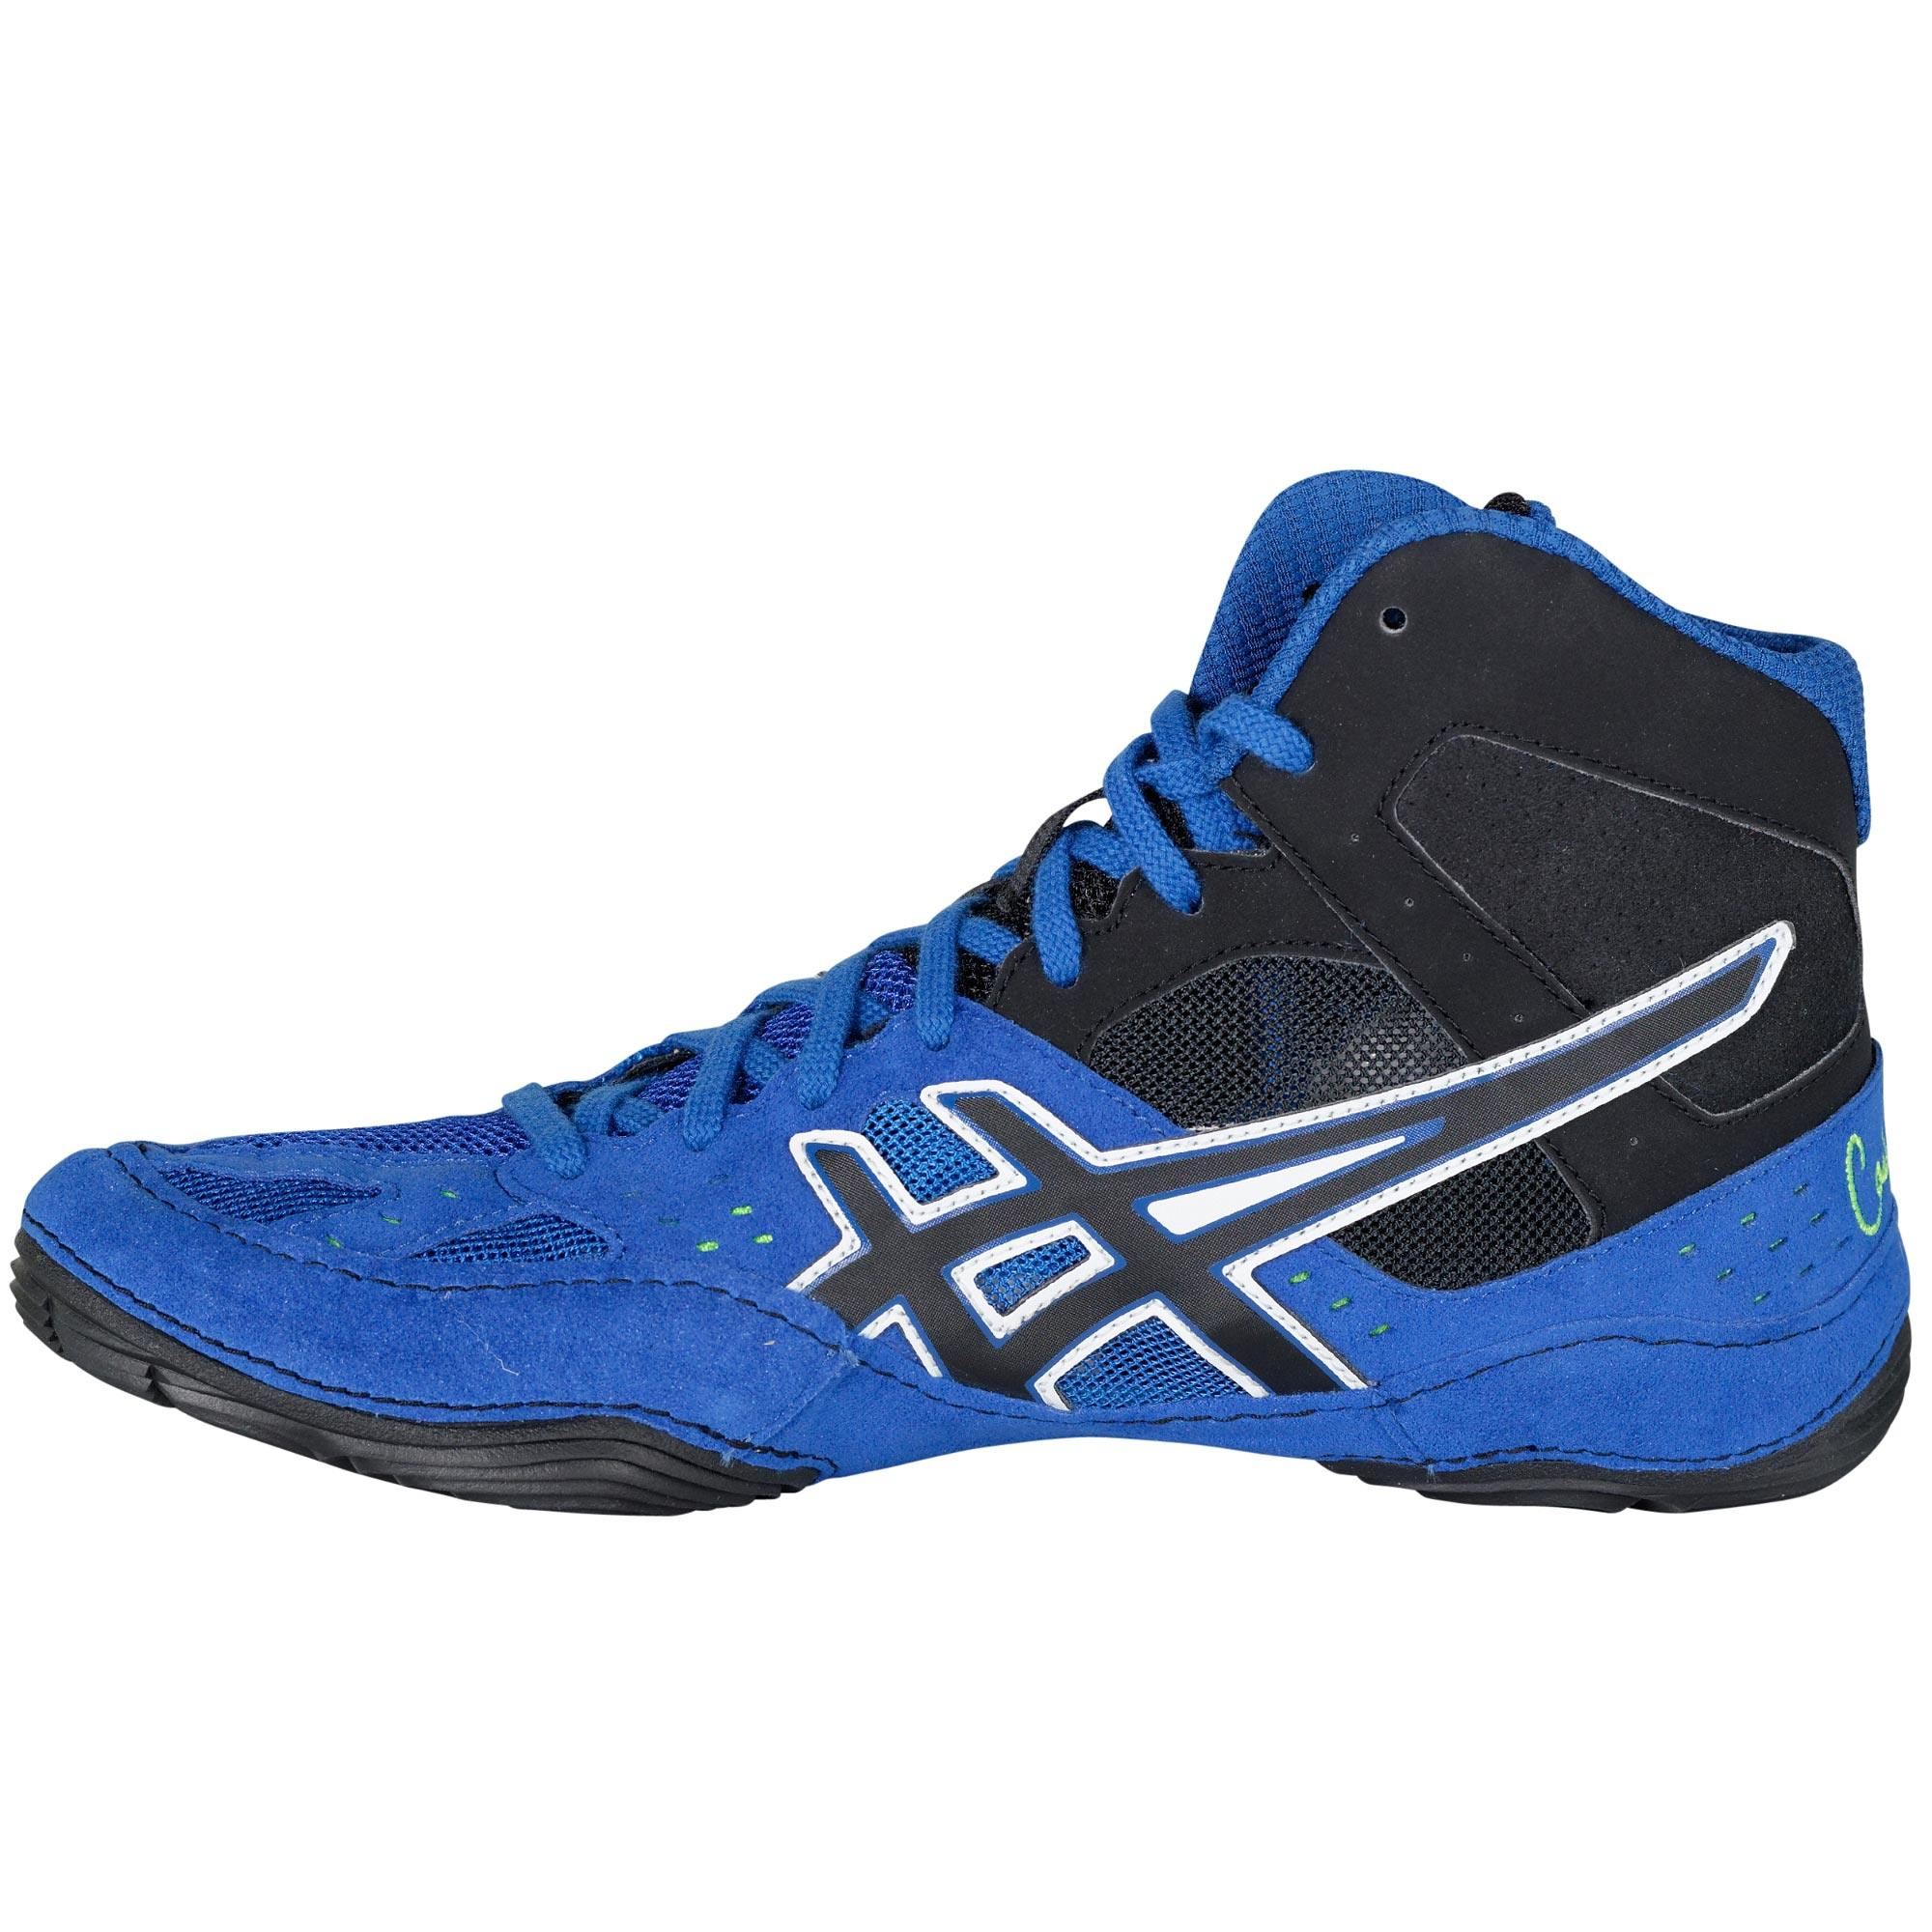 ASICS Cael V6.0 Shoes | WrestlingMart | Free Shipping